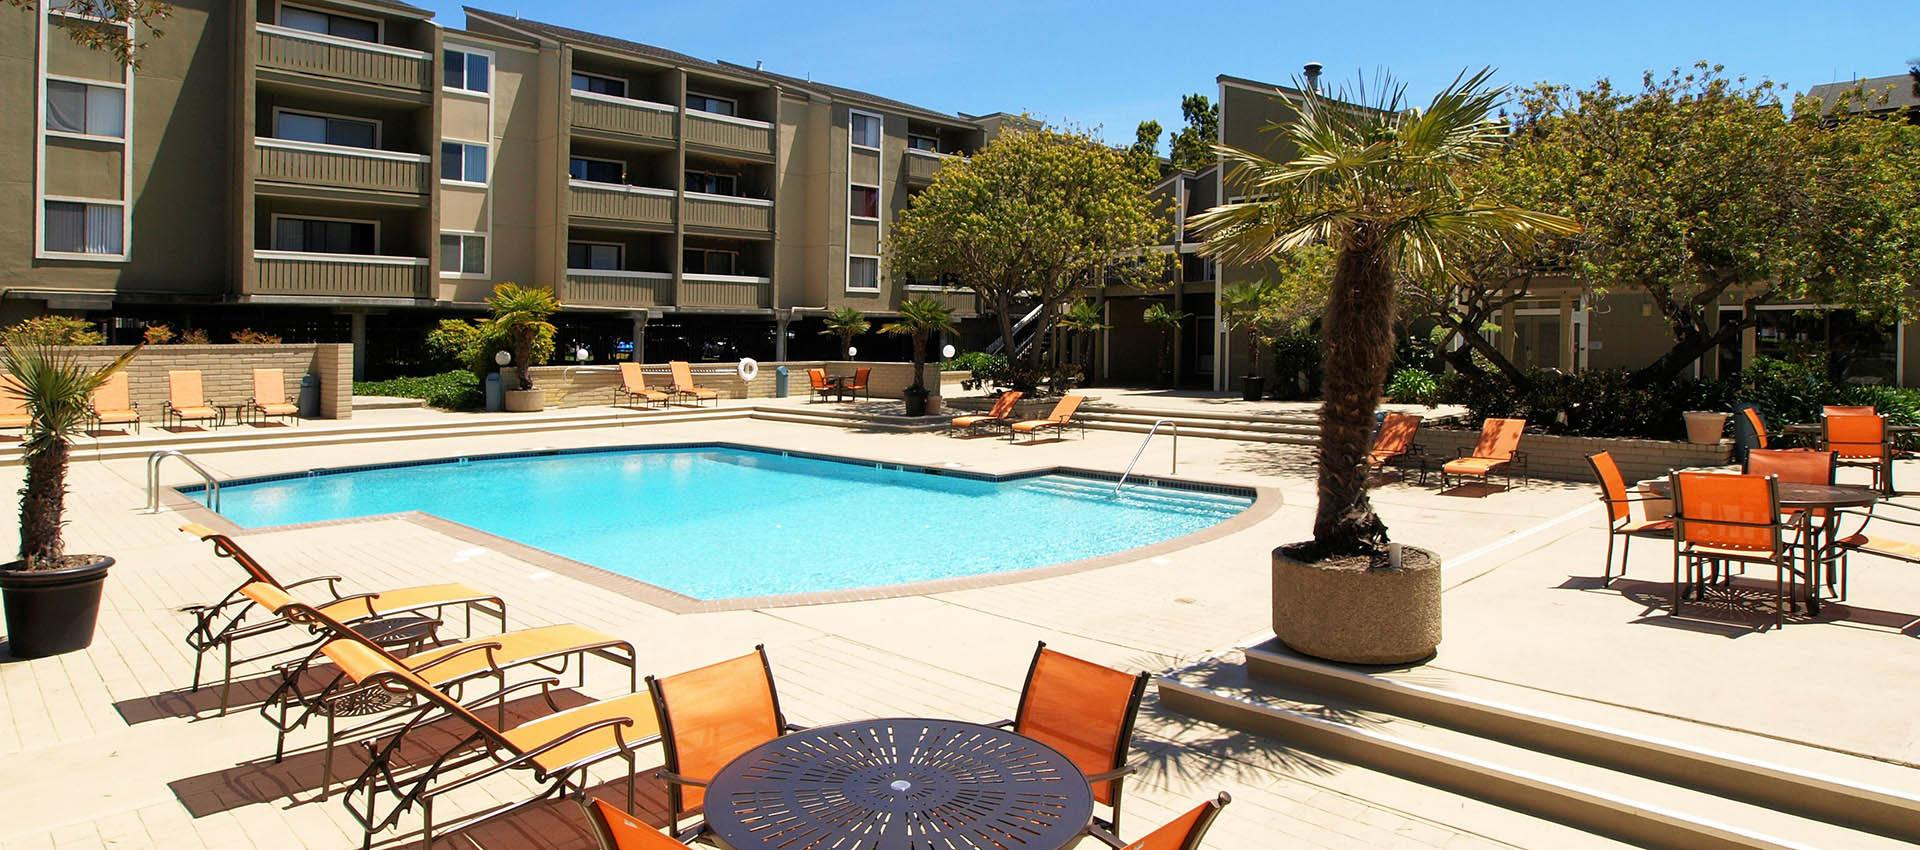 Pool at apartments in Alameda, CA